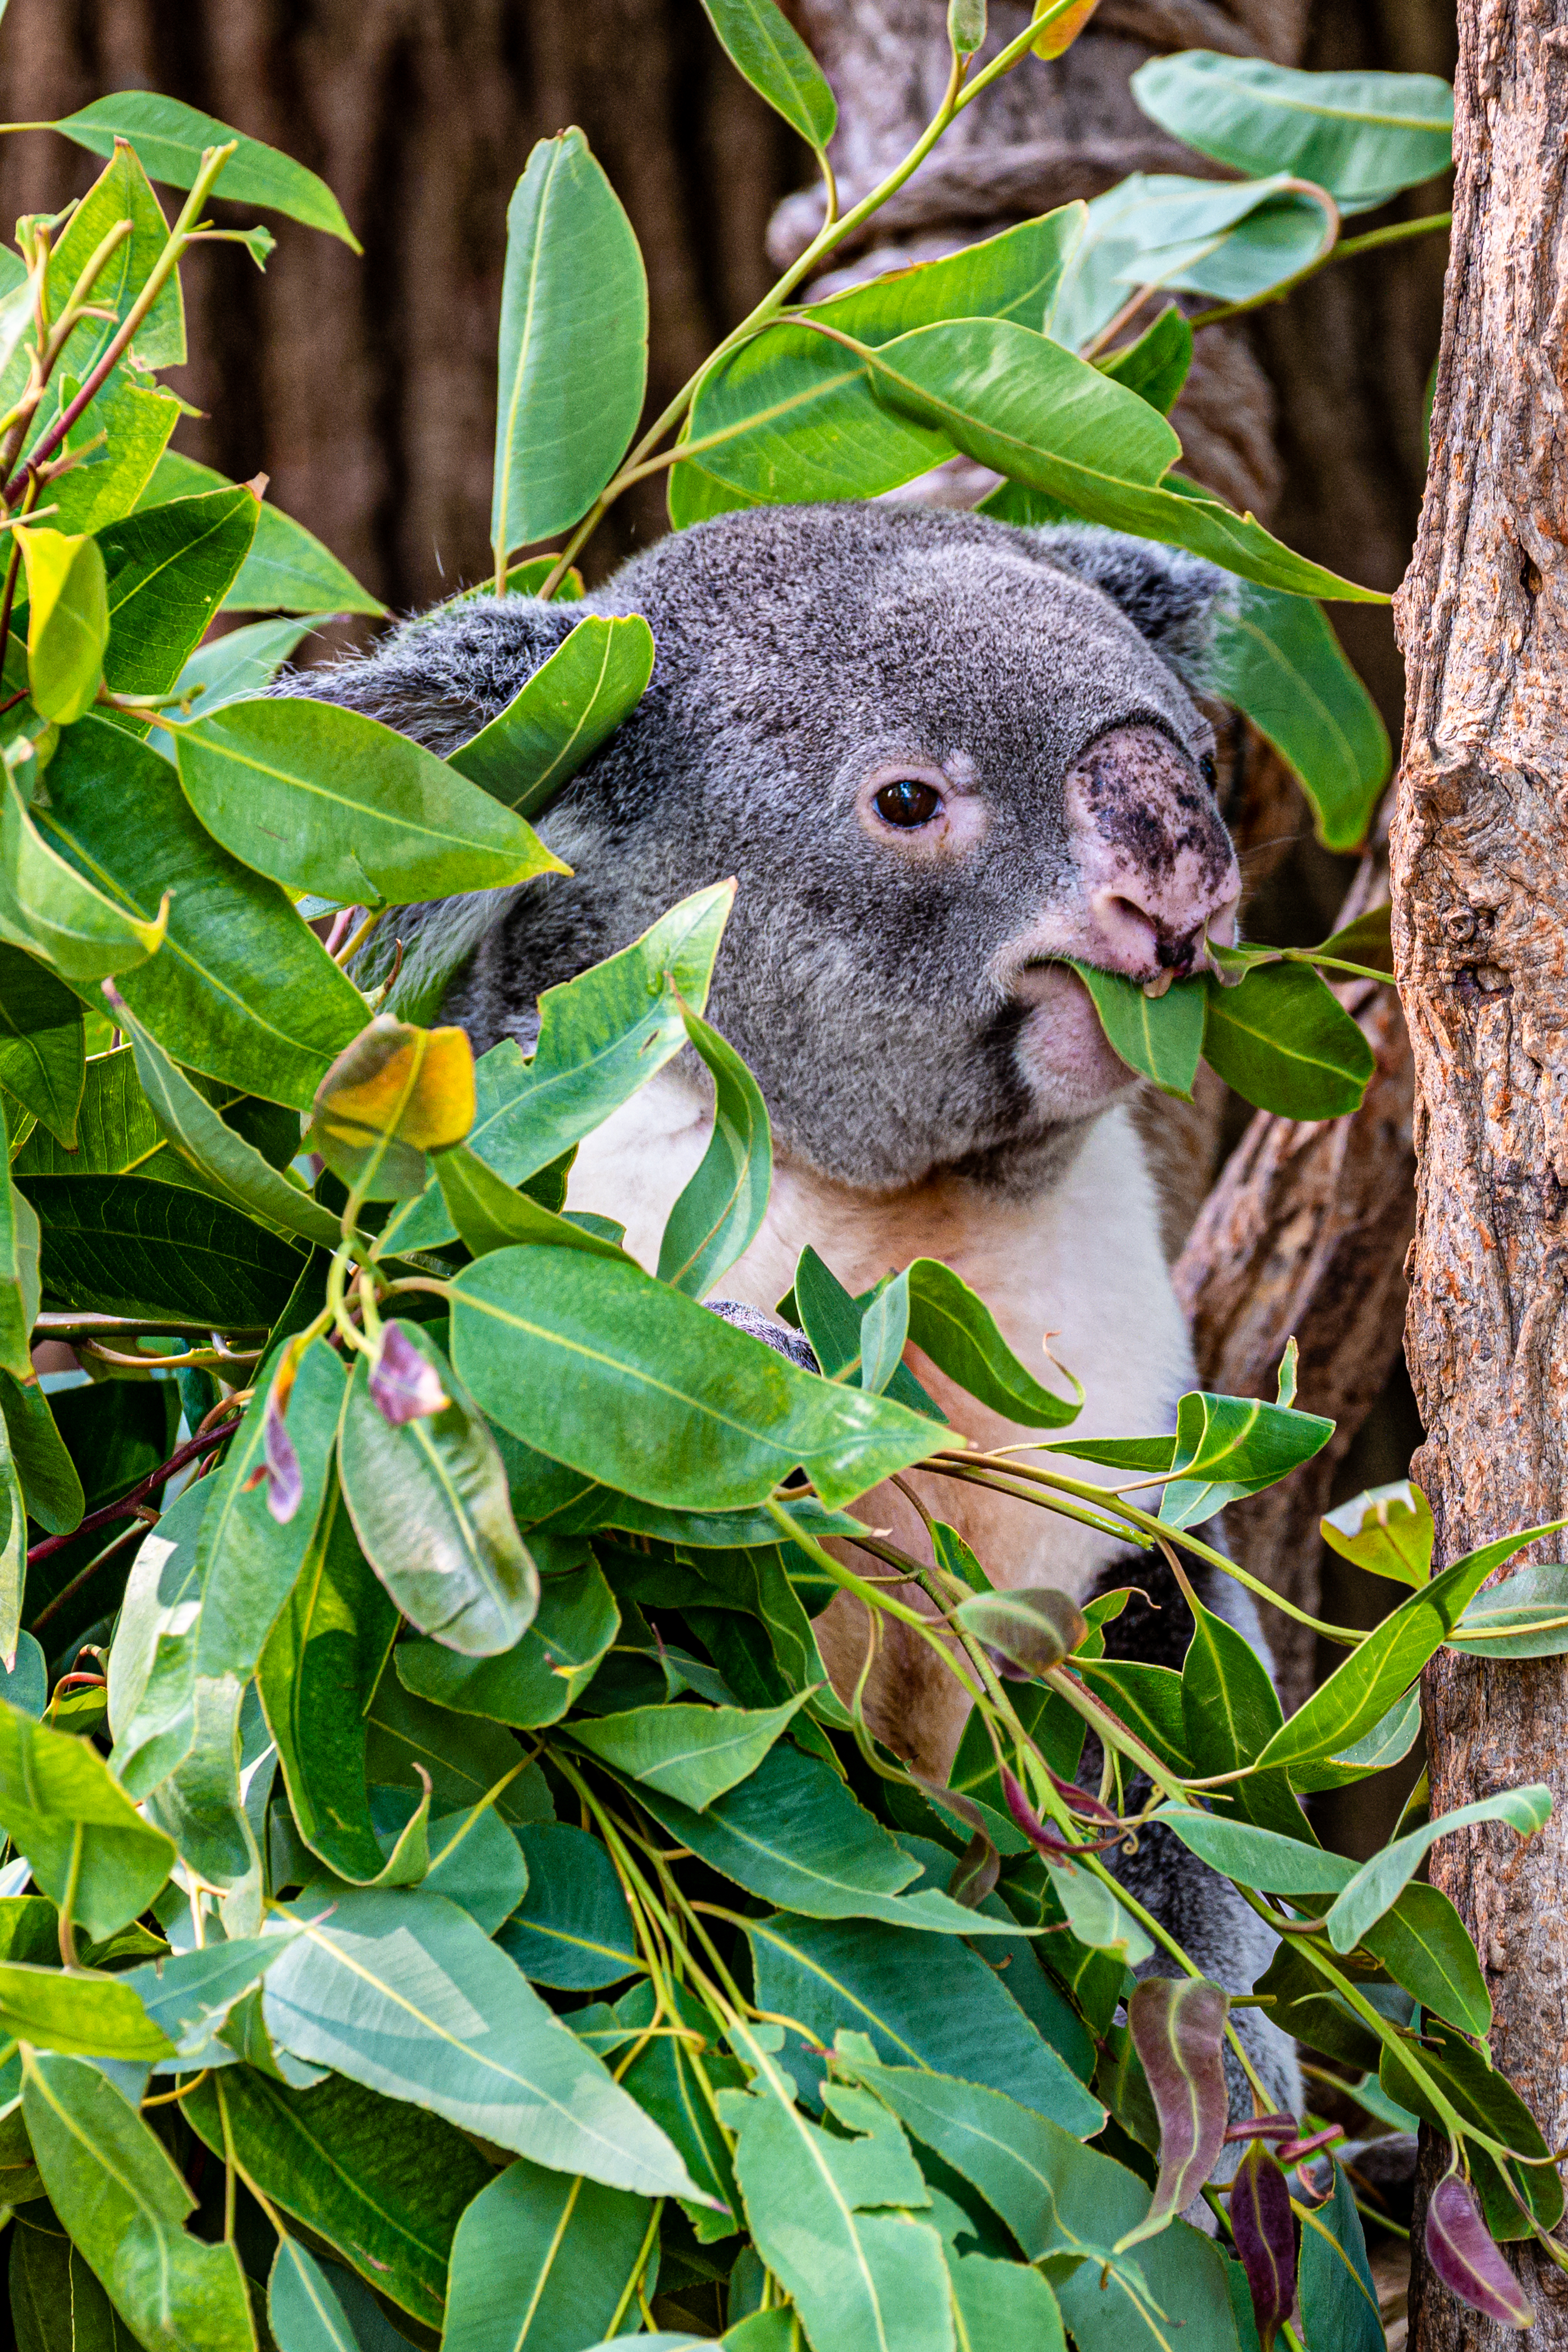 118302 download wallpaper Animals, Koala, Animal, Funny, Branches, Wood, Tree screensavers and pictures for free